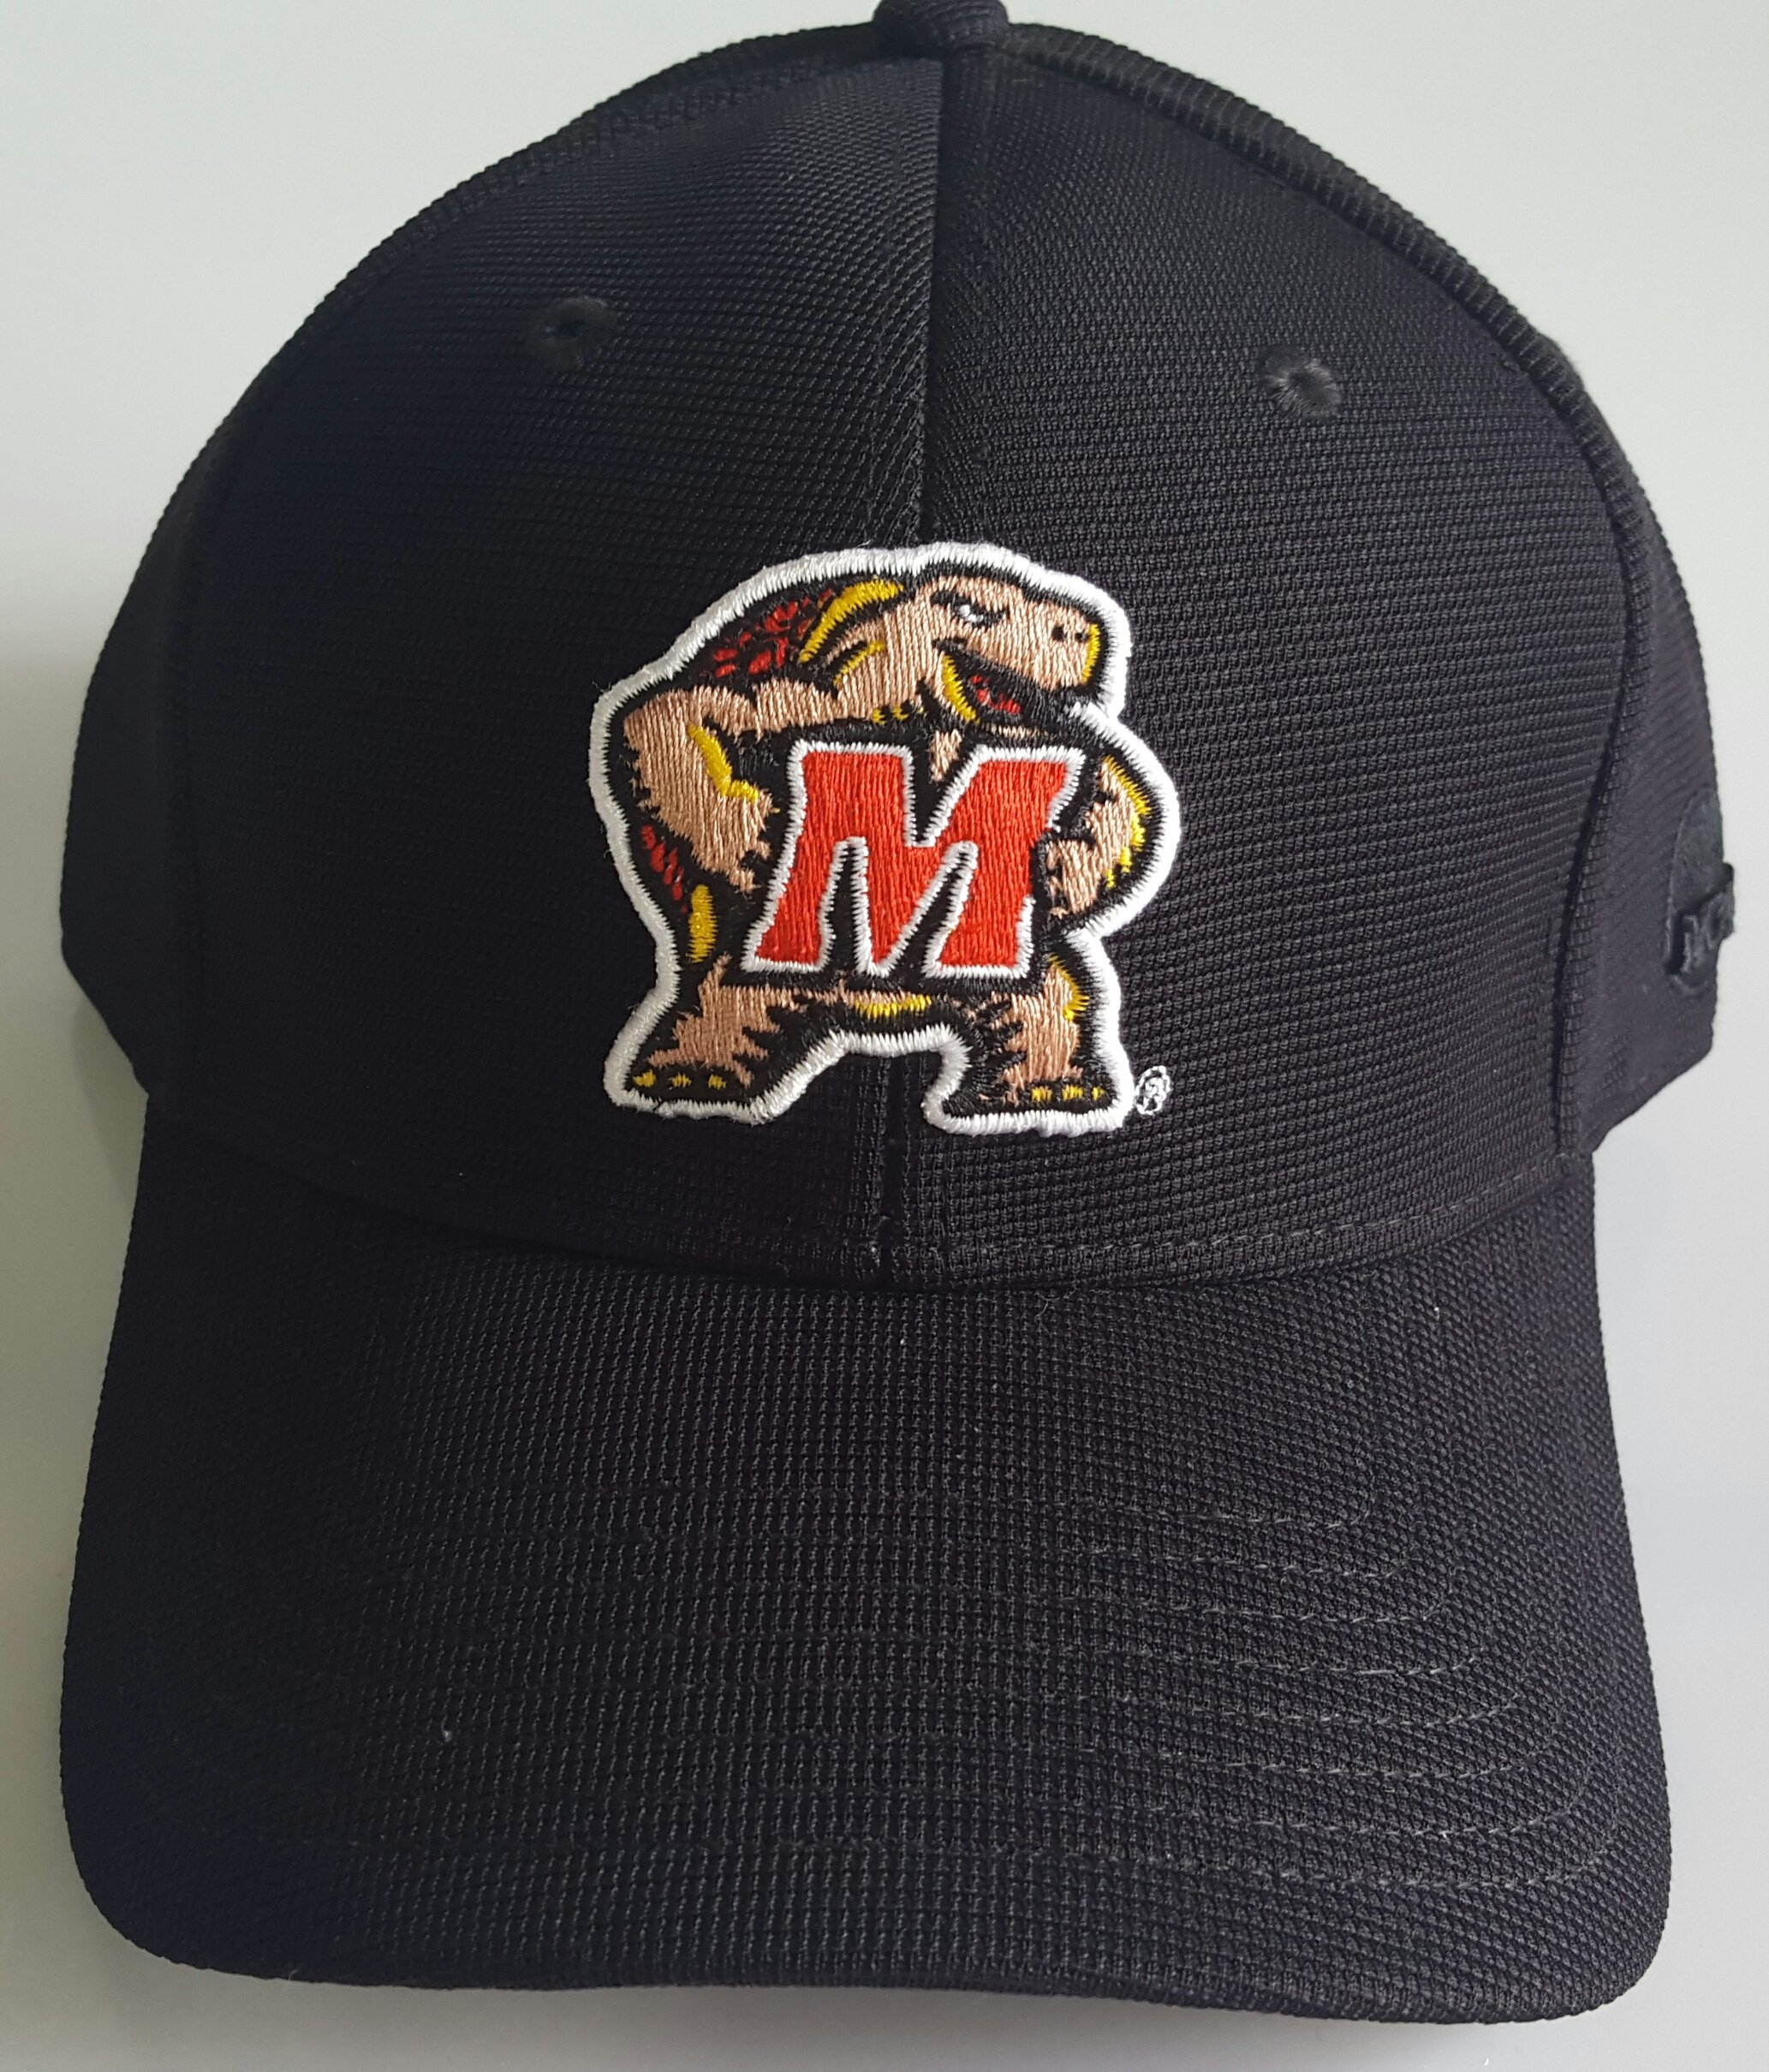 NCAA New Maryland Terps Embroidered Adjustable Cap